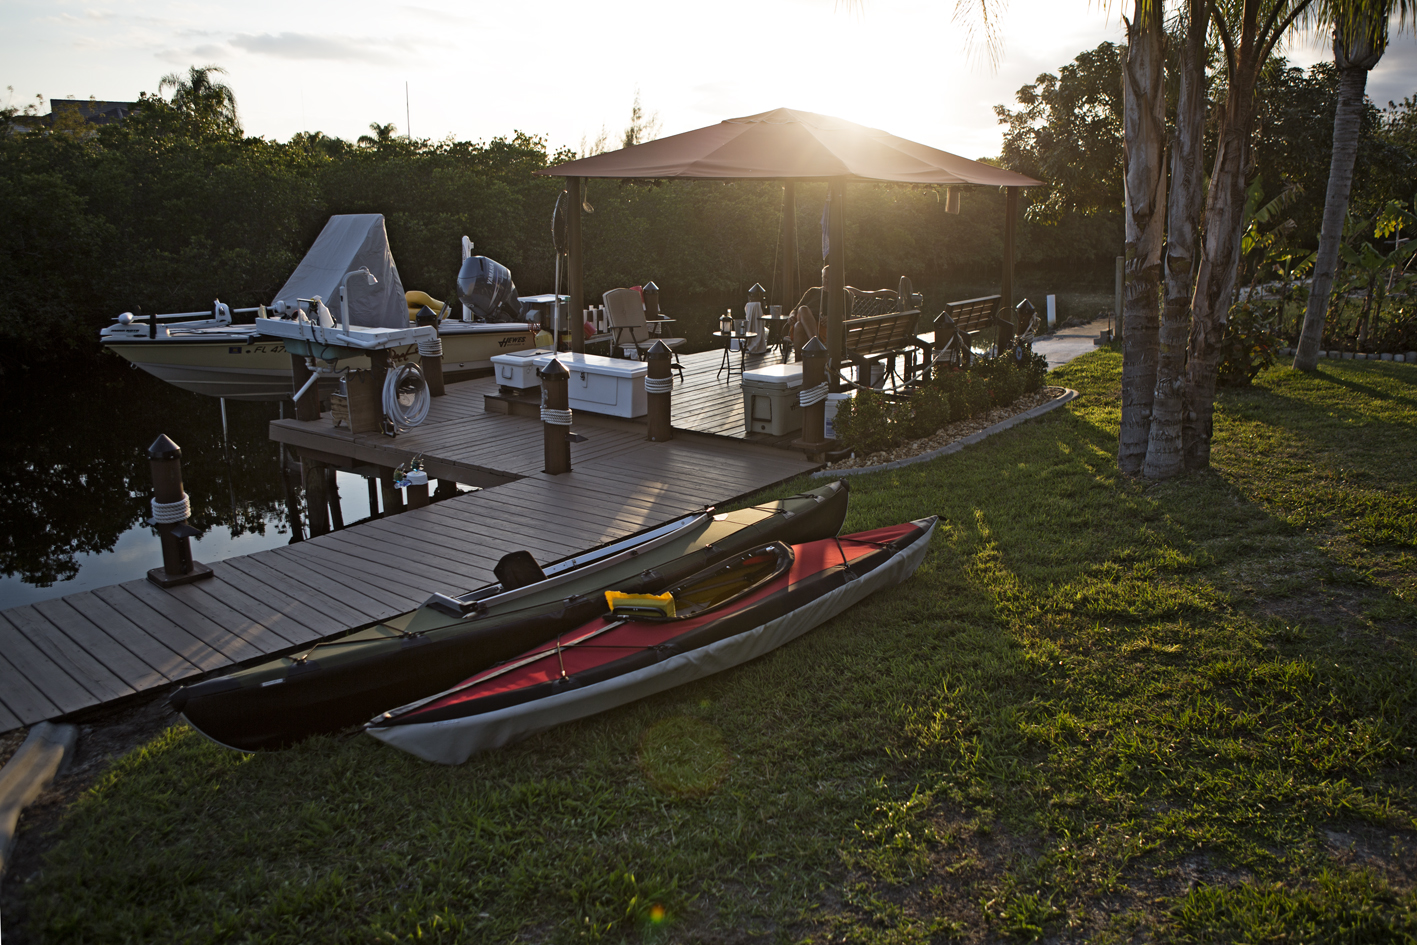 A test run to assemble the boats after arriving in Florida.